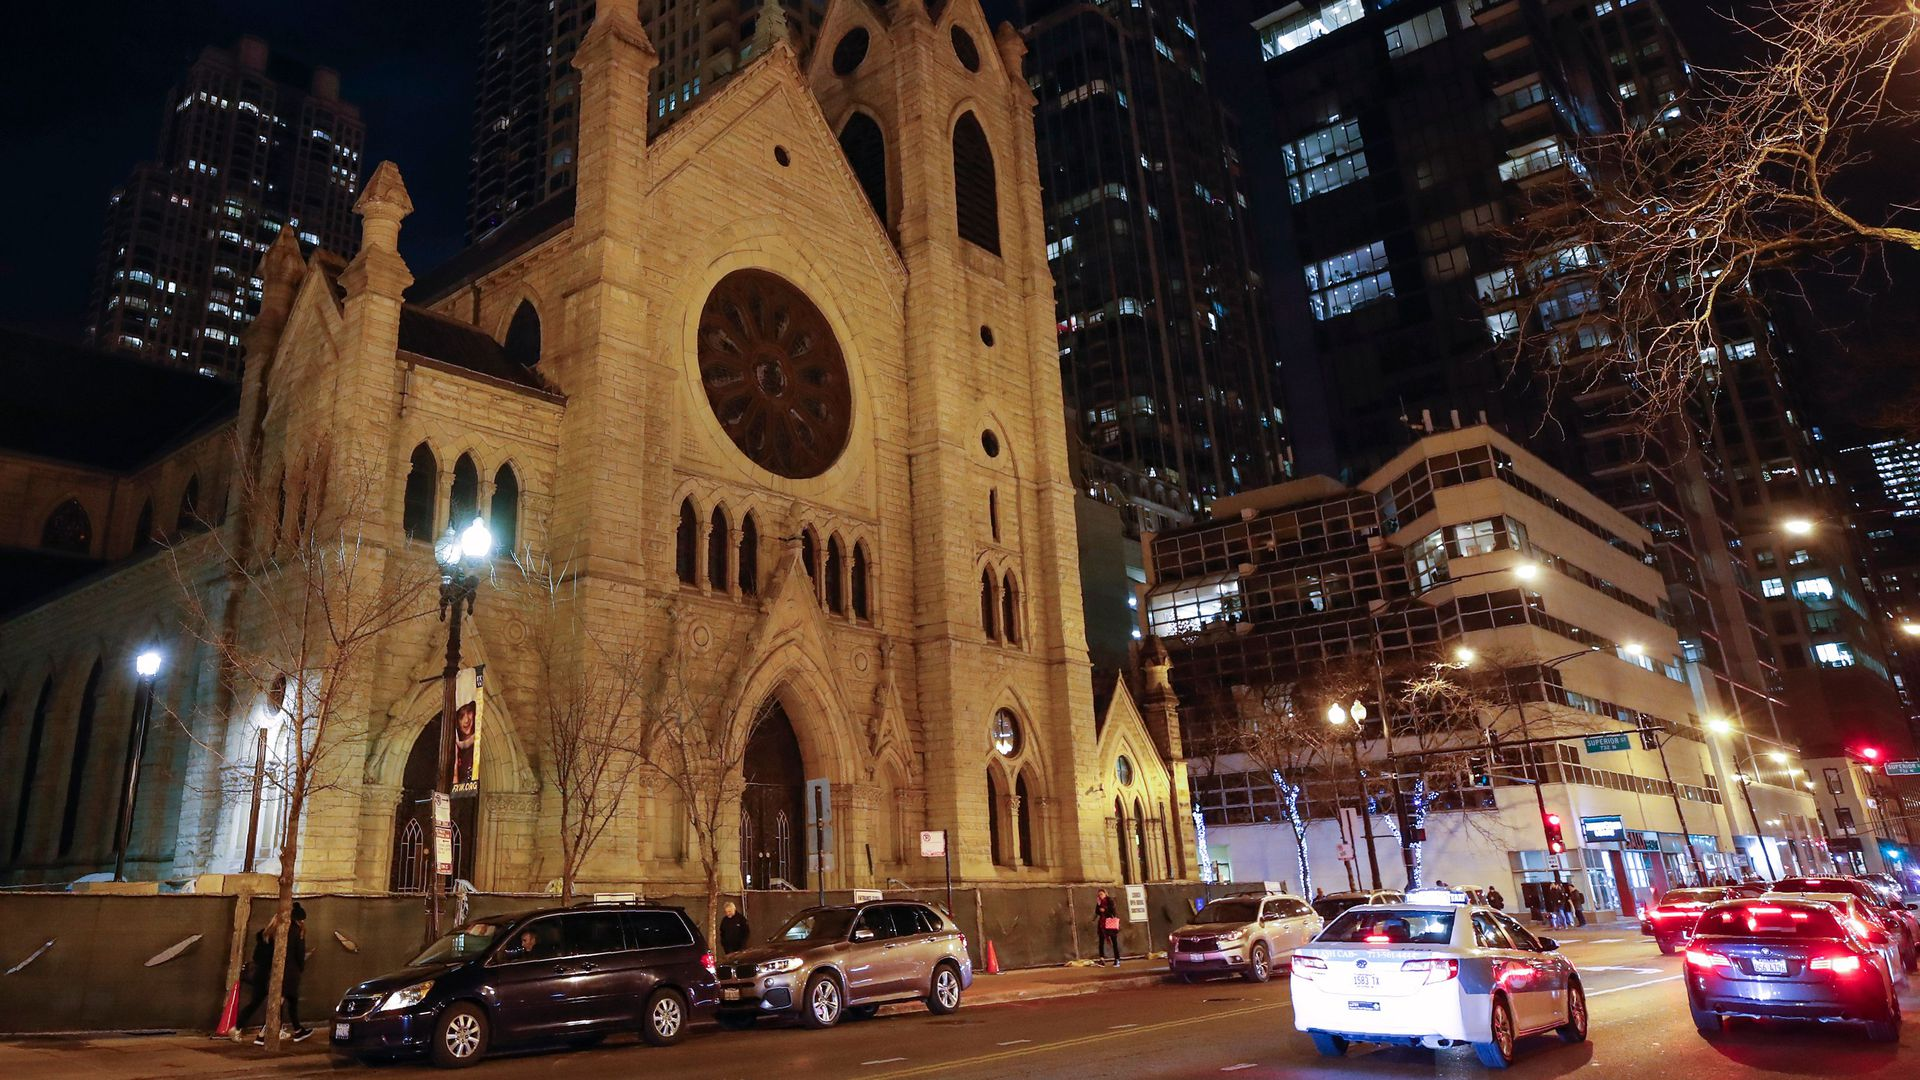 The Holy Name Cathedral in Chicago